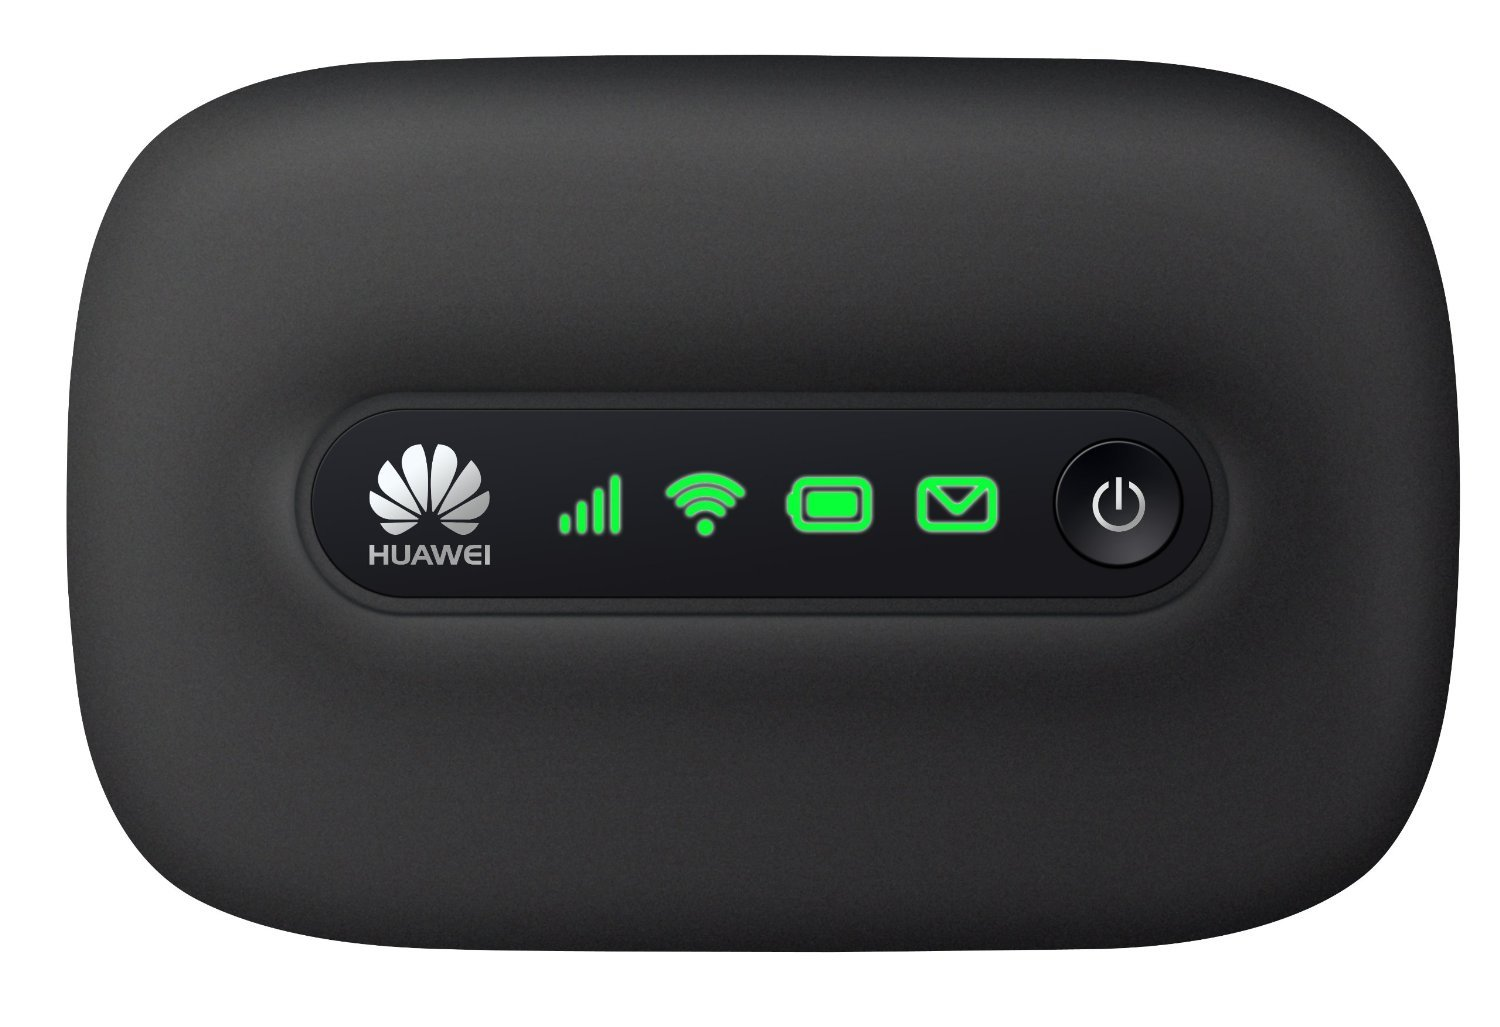 Huawei E5331s-2 21 Mbps 3G Mobile WiFi Hotspot (3G in Europe, Asia, Middle East, Africa & T-Mobile USA) - Black